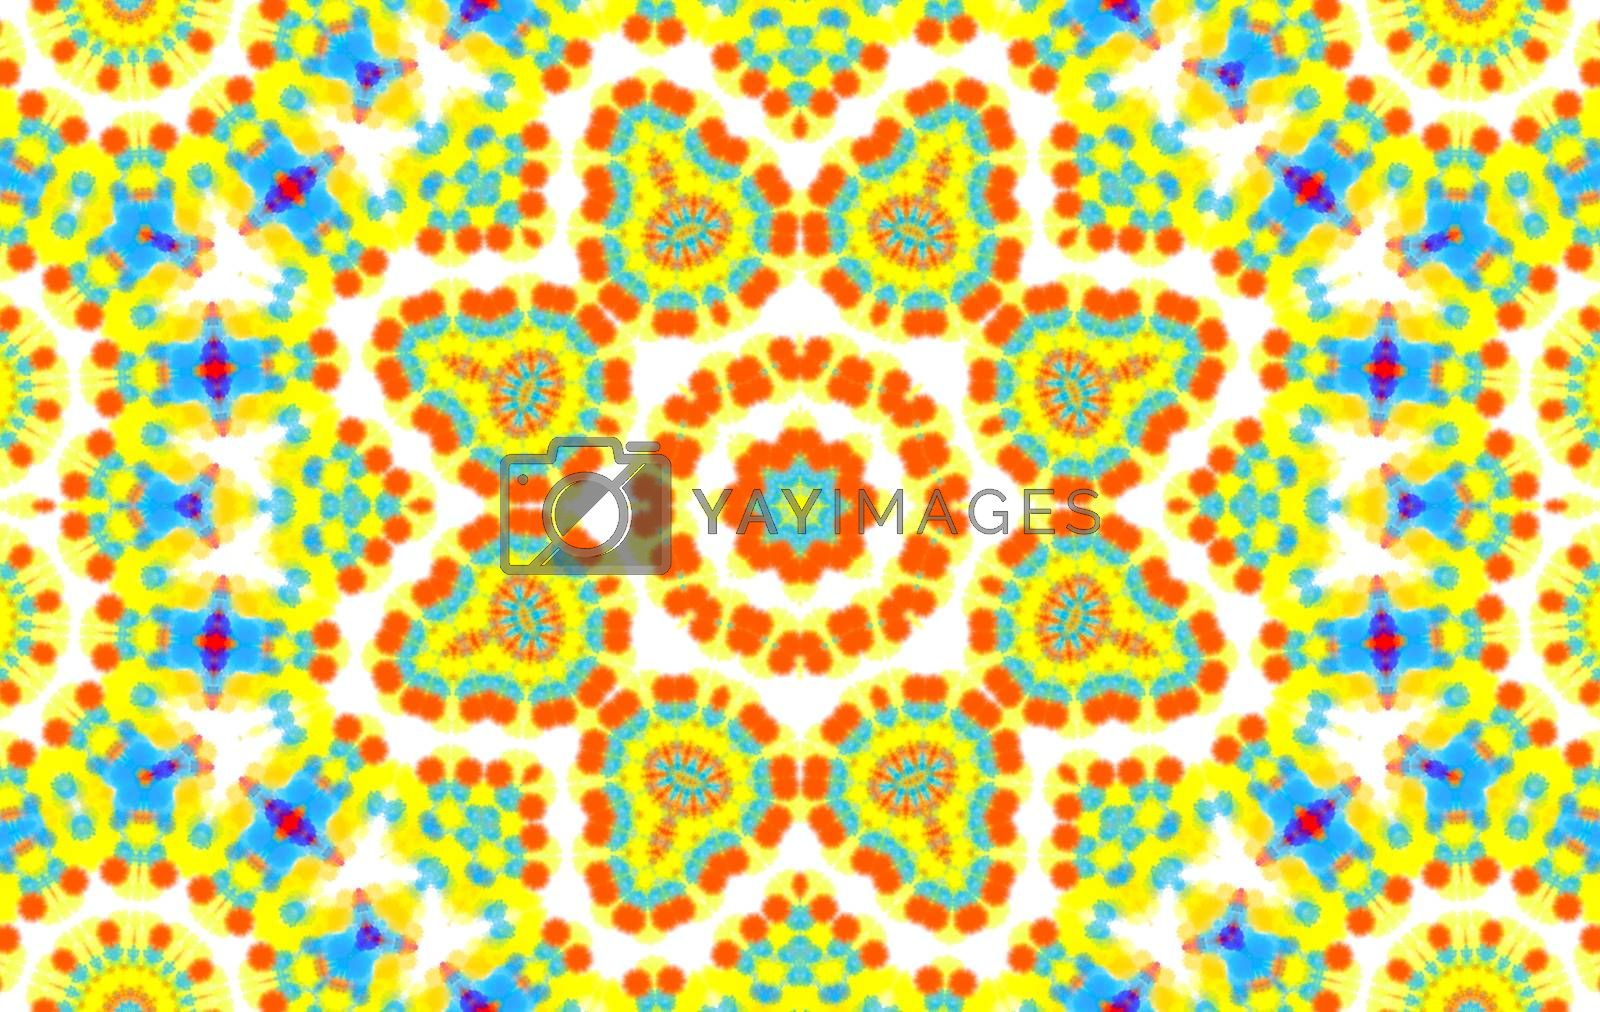 Background with abstract concentric colorful pattern